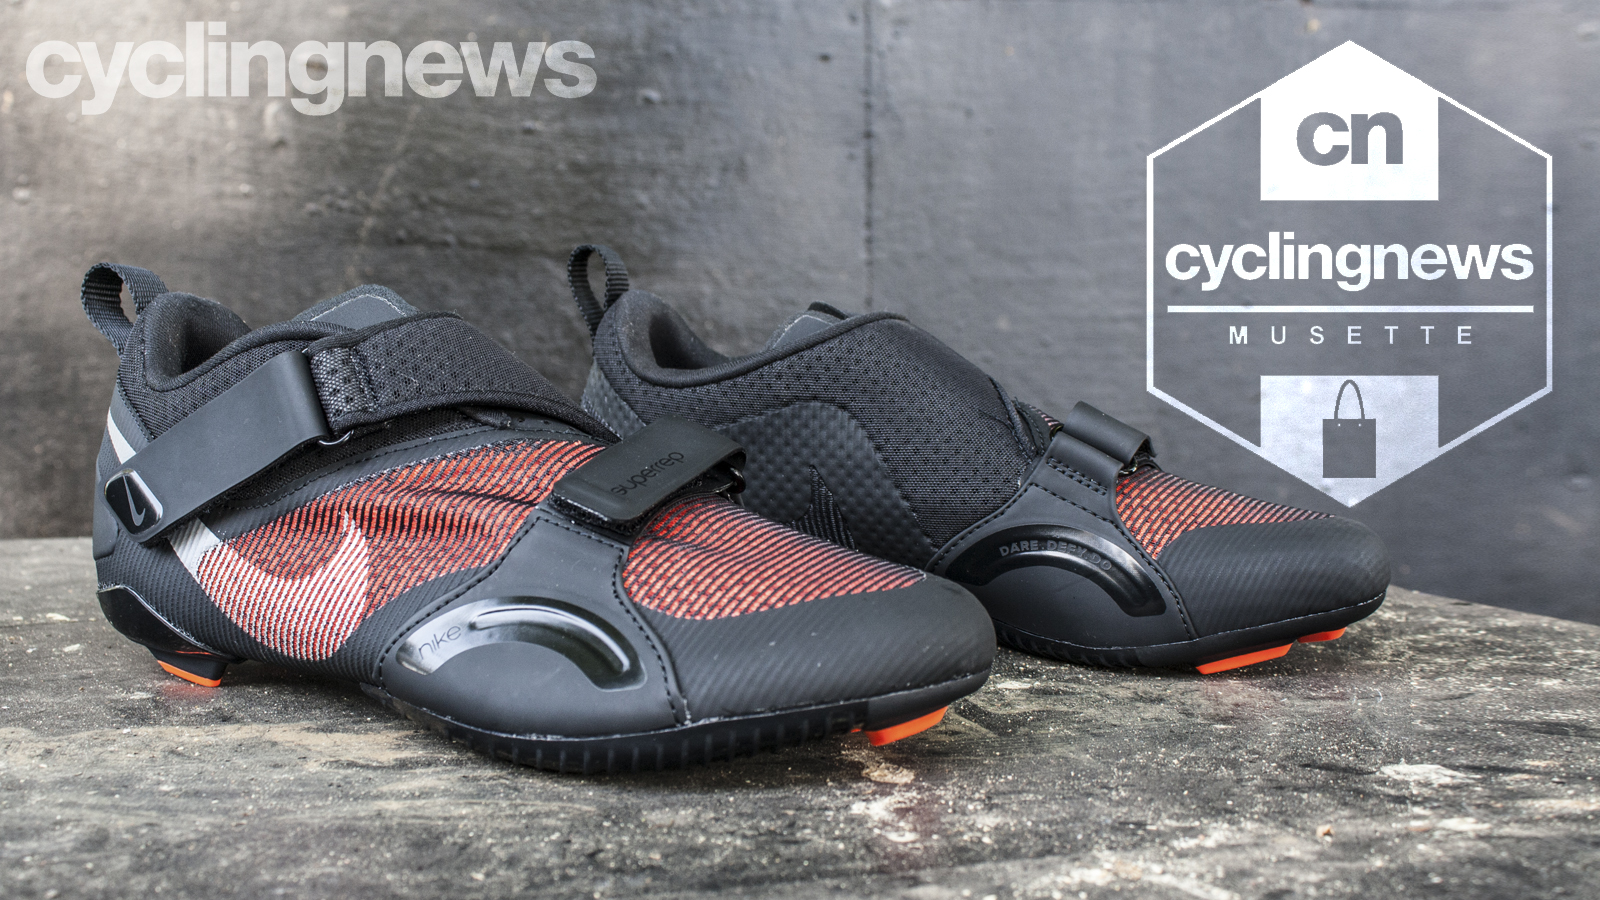 milicia Negligencia médica disfraz  The Musette: Nike SuperRep Cycle indoor cycling shoes, new kit from Albion  and Fizik Terra X4 Powerstrap | Cyclingnews